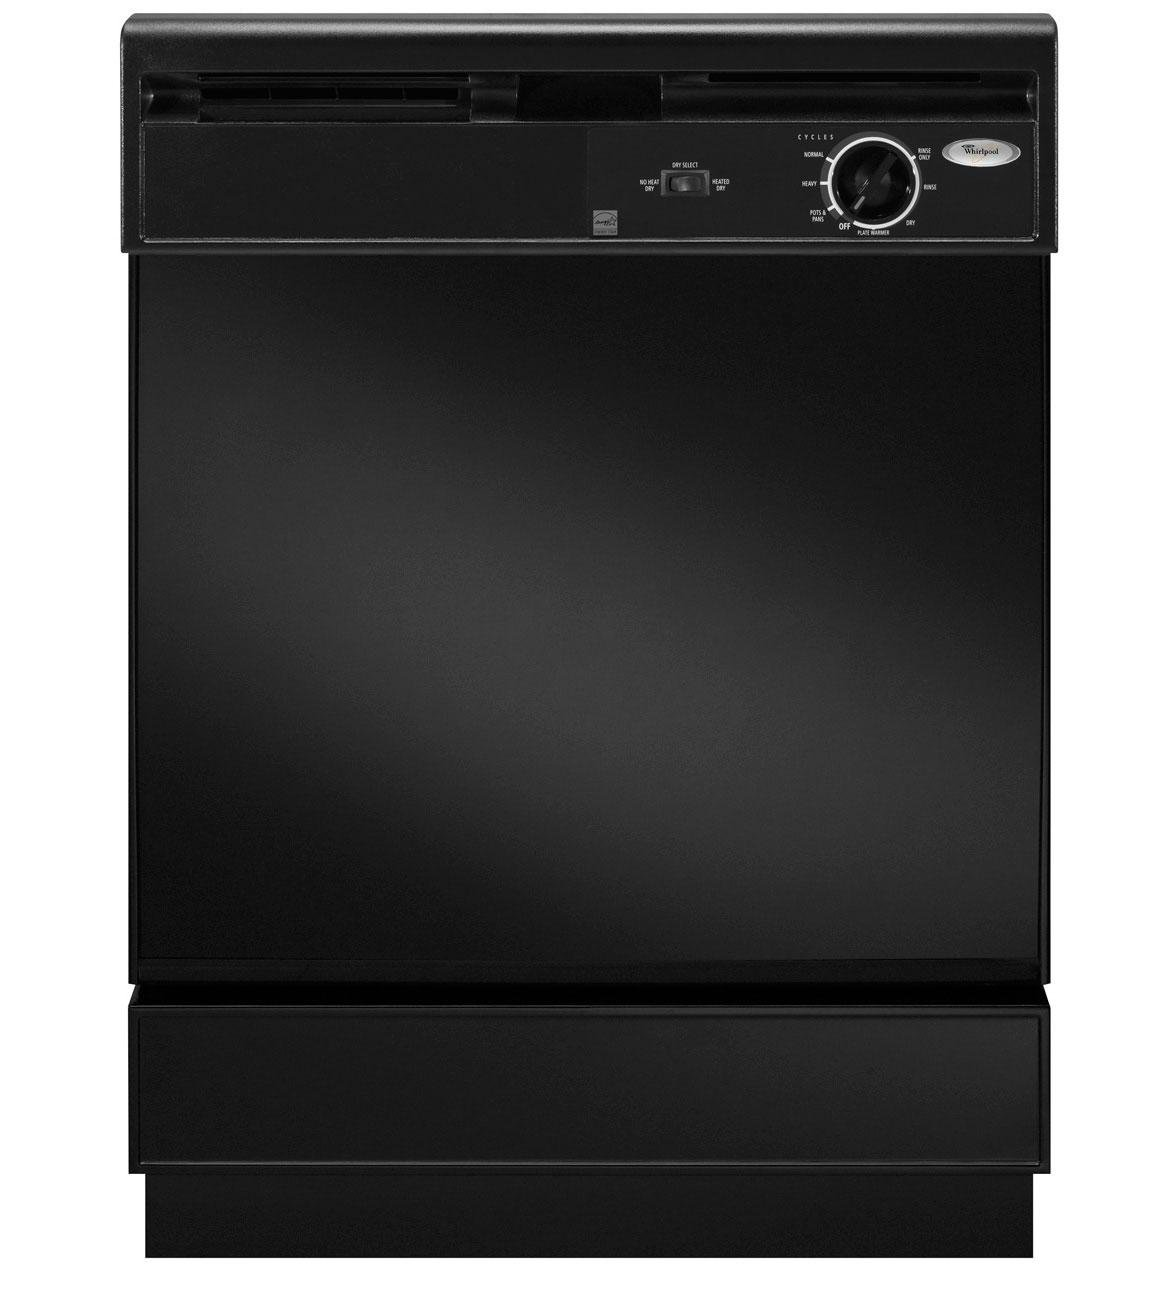 WHIRLPOOL DISHWASHERS 53-7700 Built-In 24'' Dishwasher, Black, 4 Cycles / 1 Option